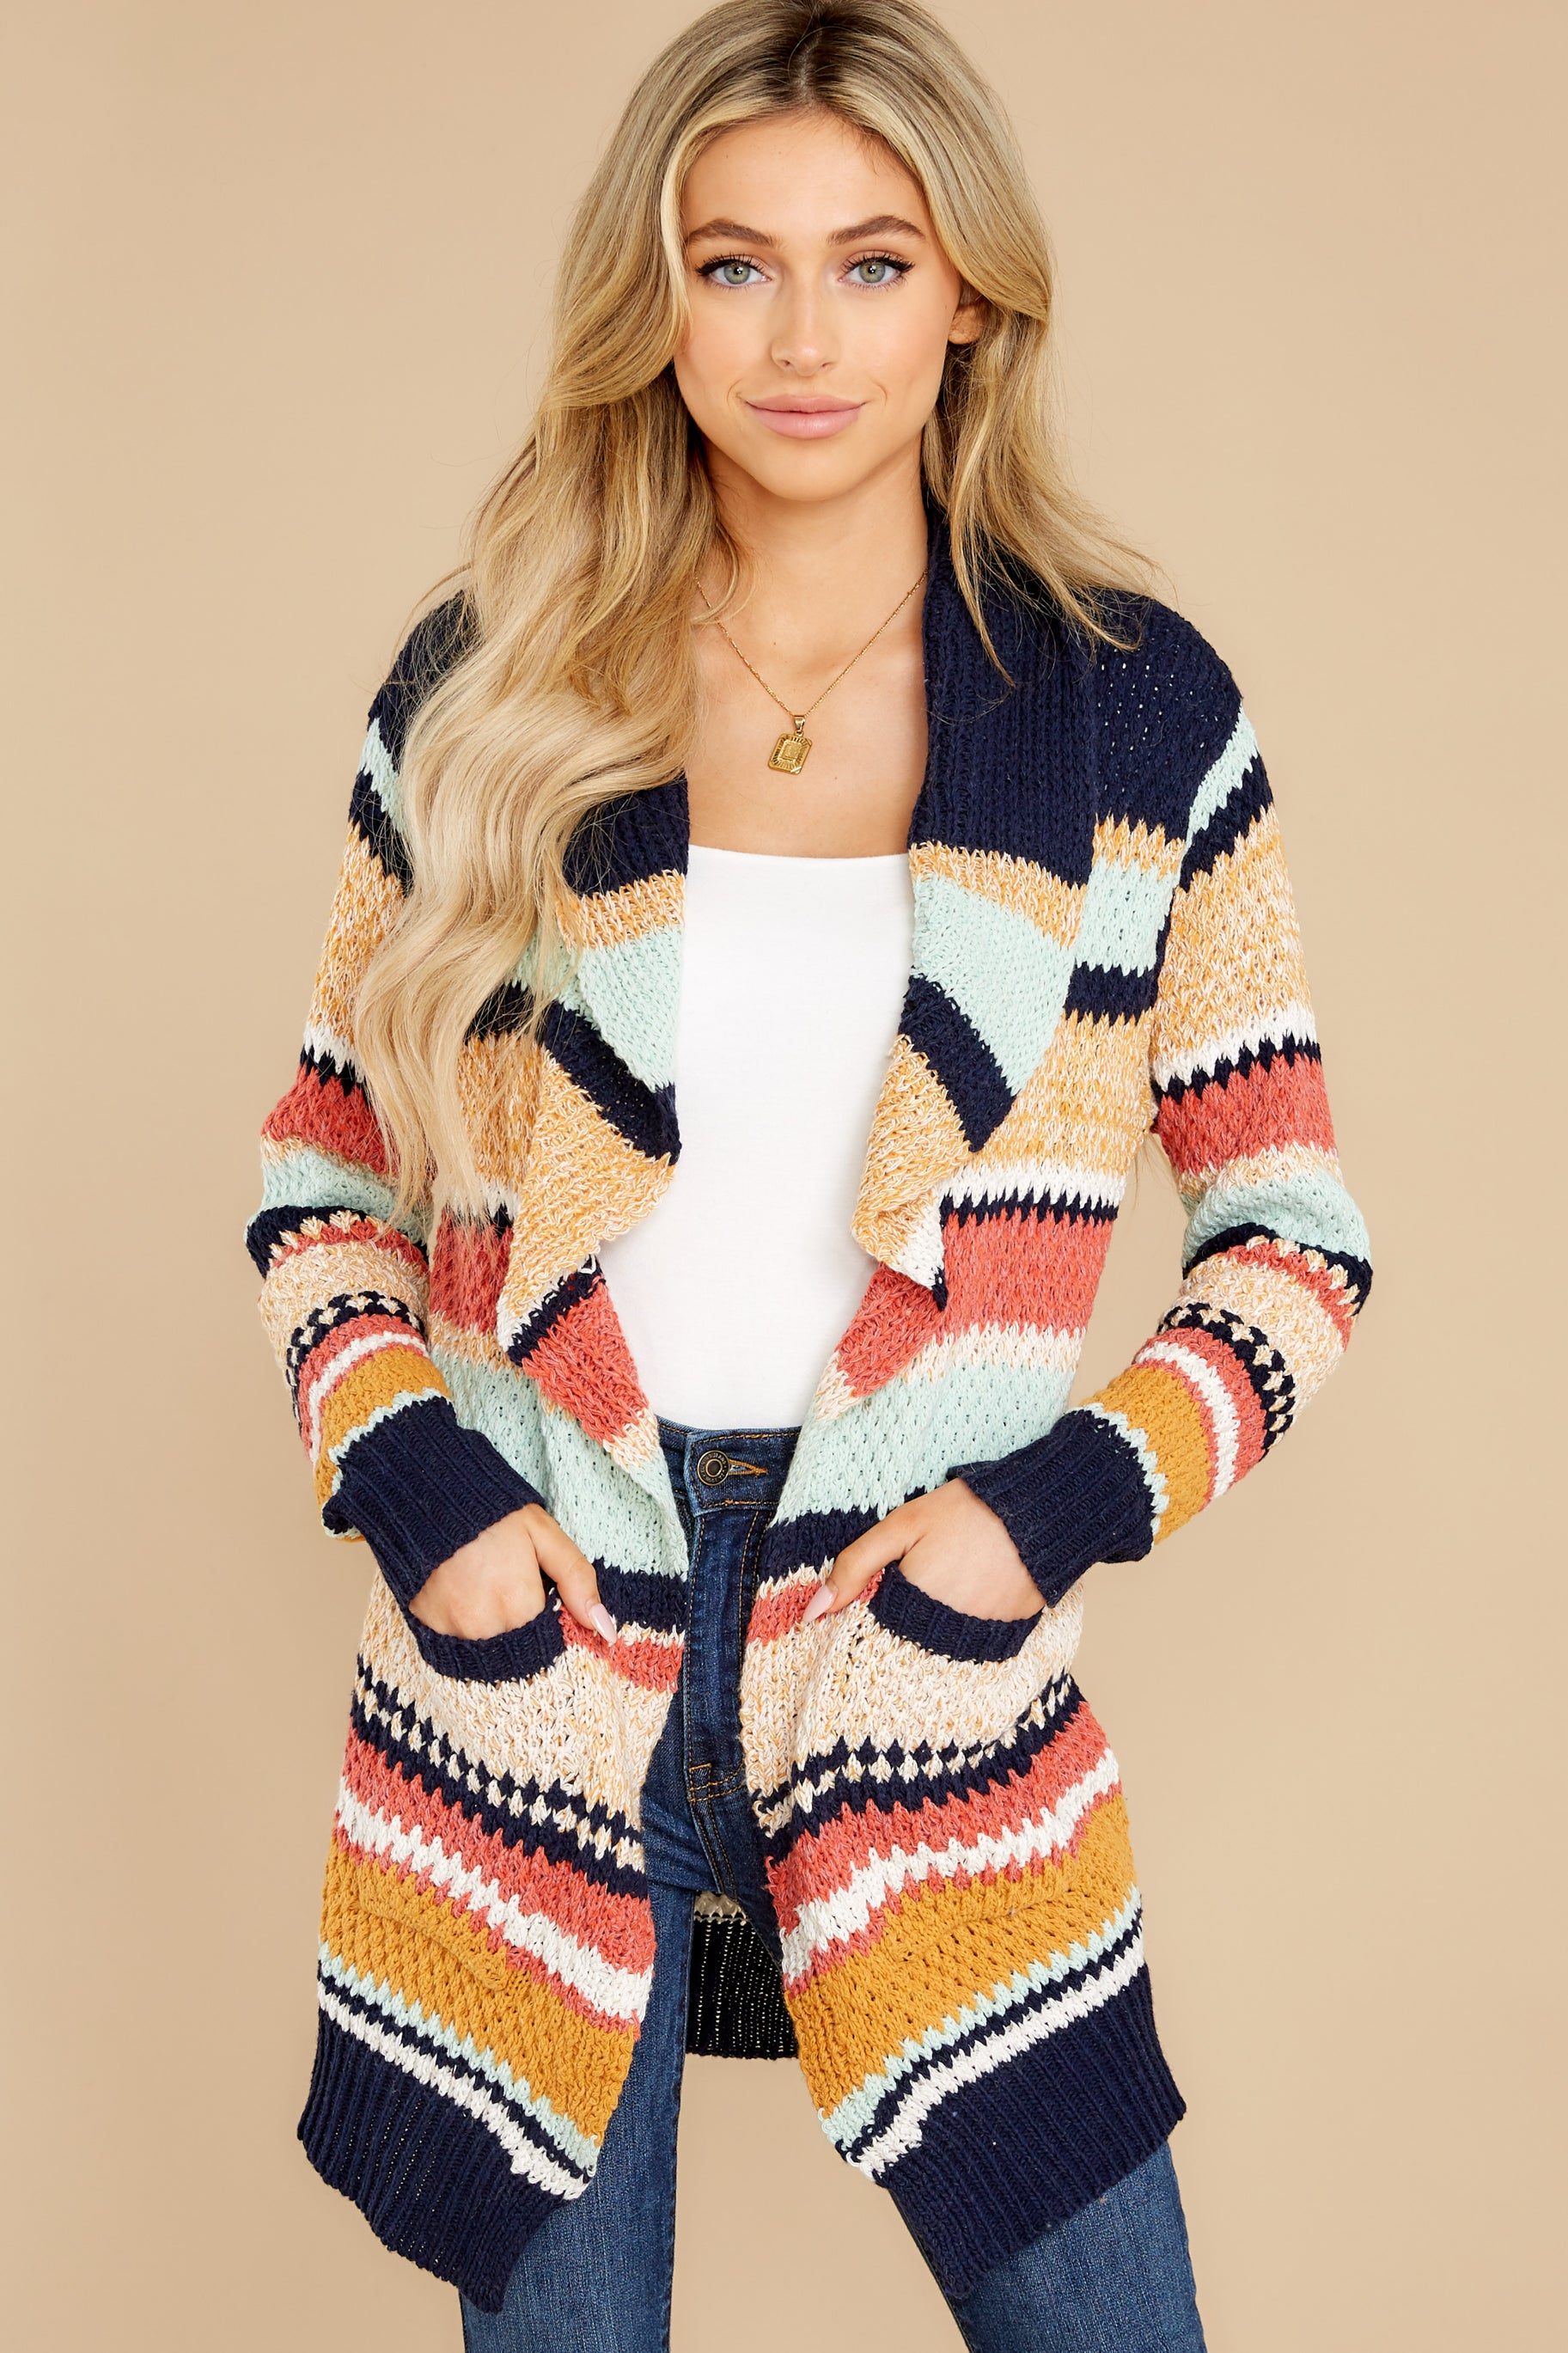 10 Denali Sunset Navy Multi Knit Cardigan at reddress.com